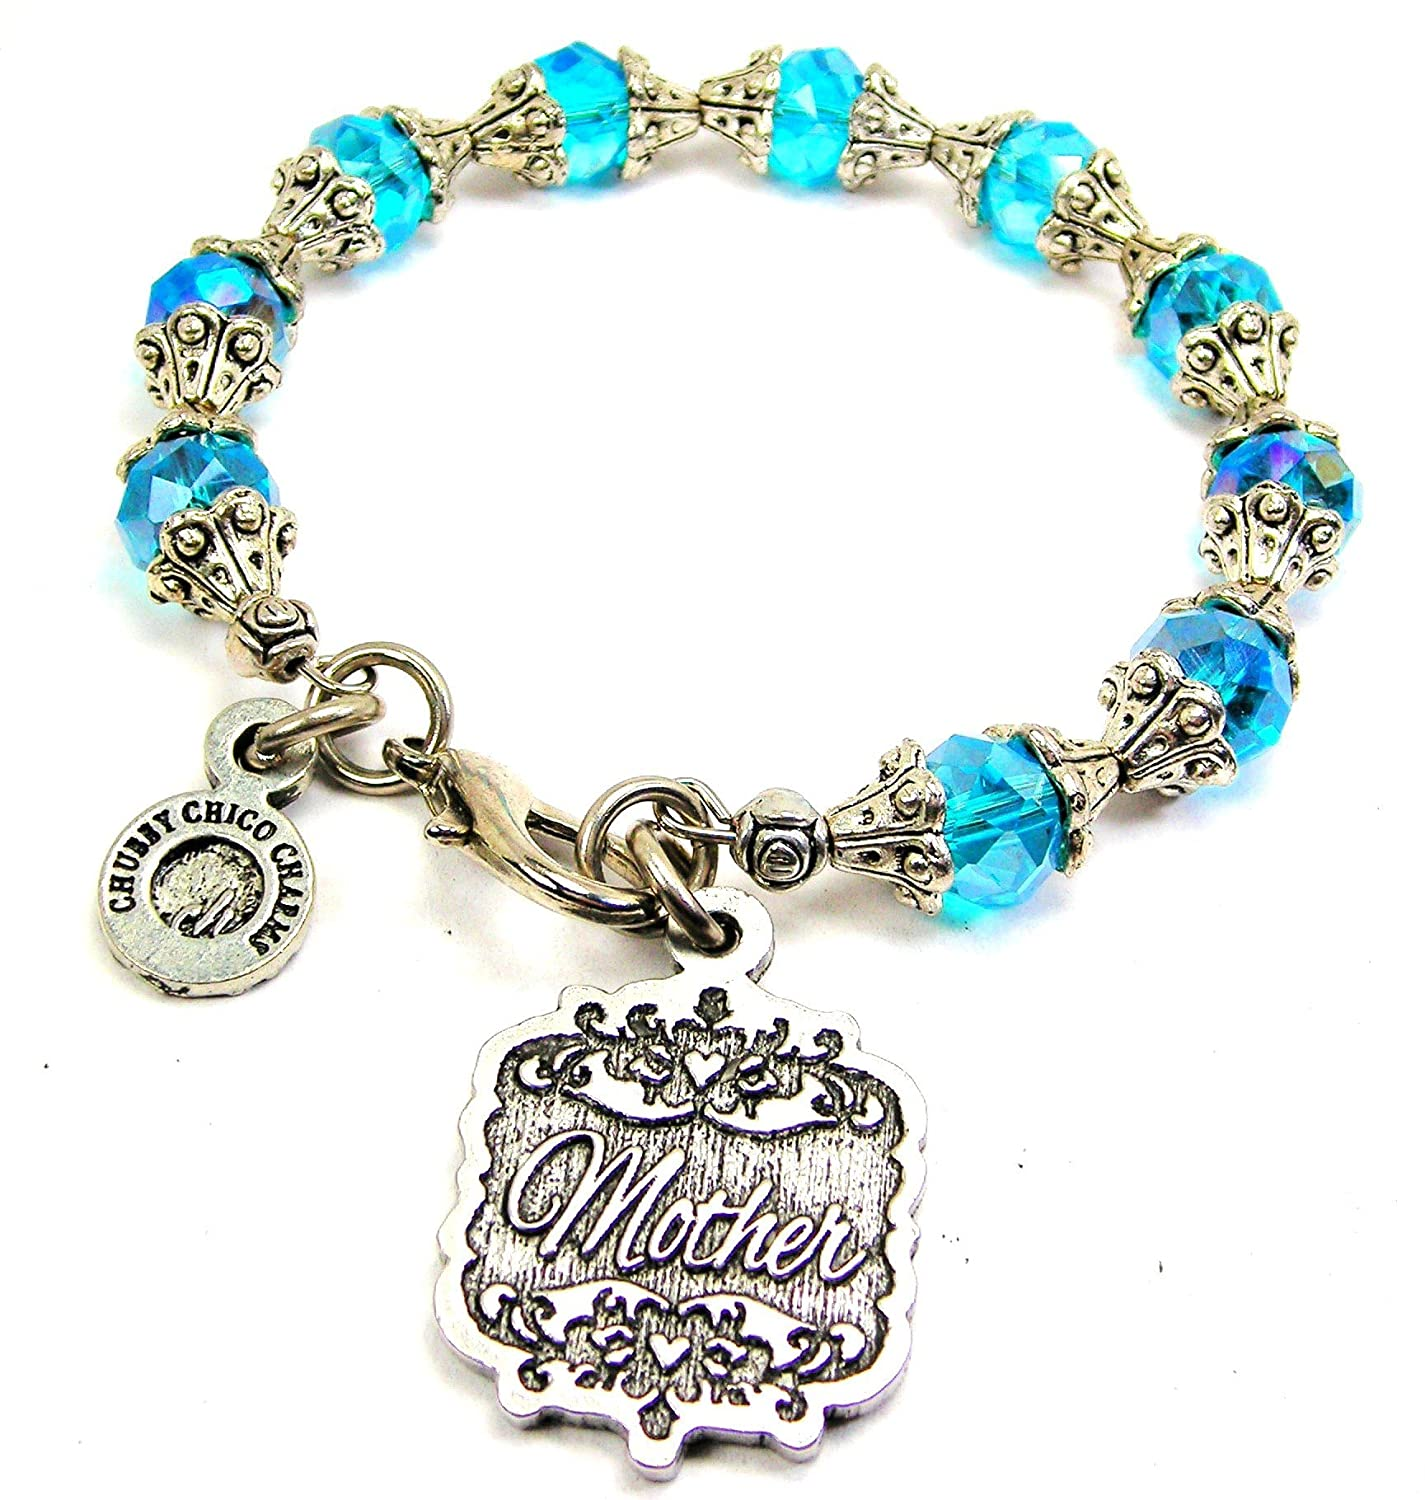 Chubby Chico Charms Mother Victorian Scroll Capped Crystal Bracelet in Aqua Blue